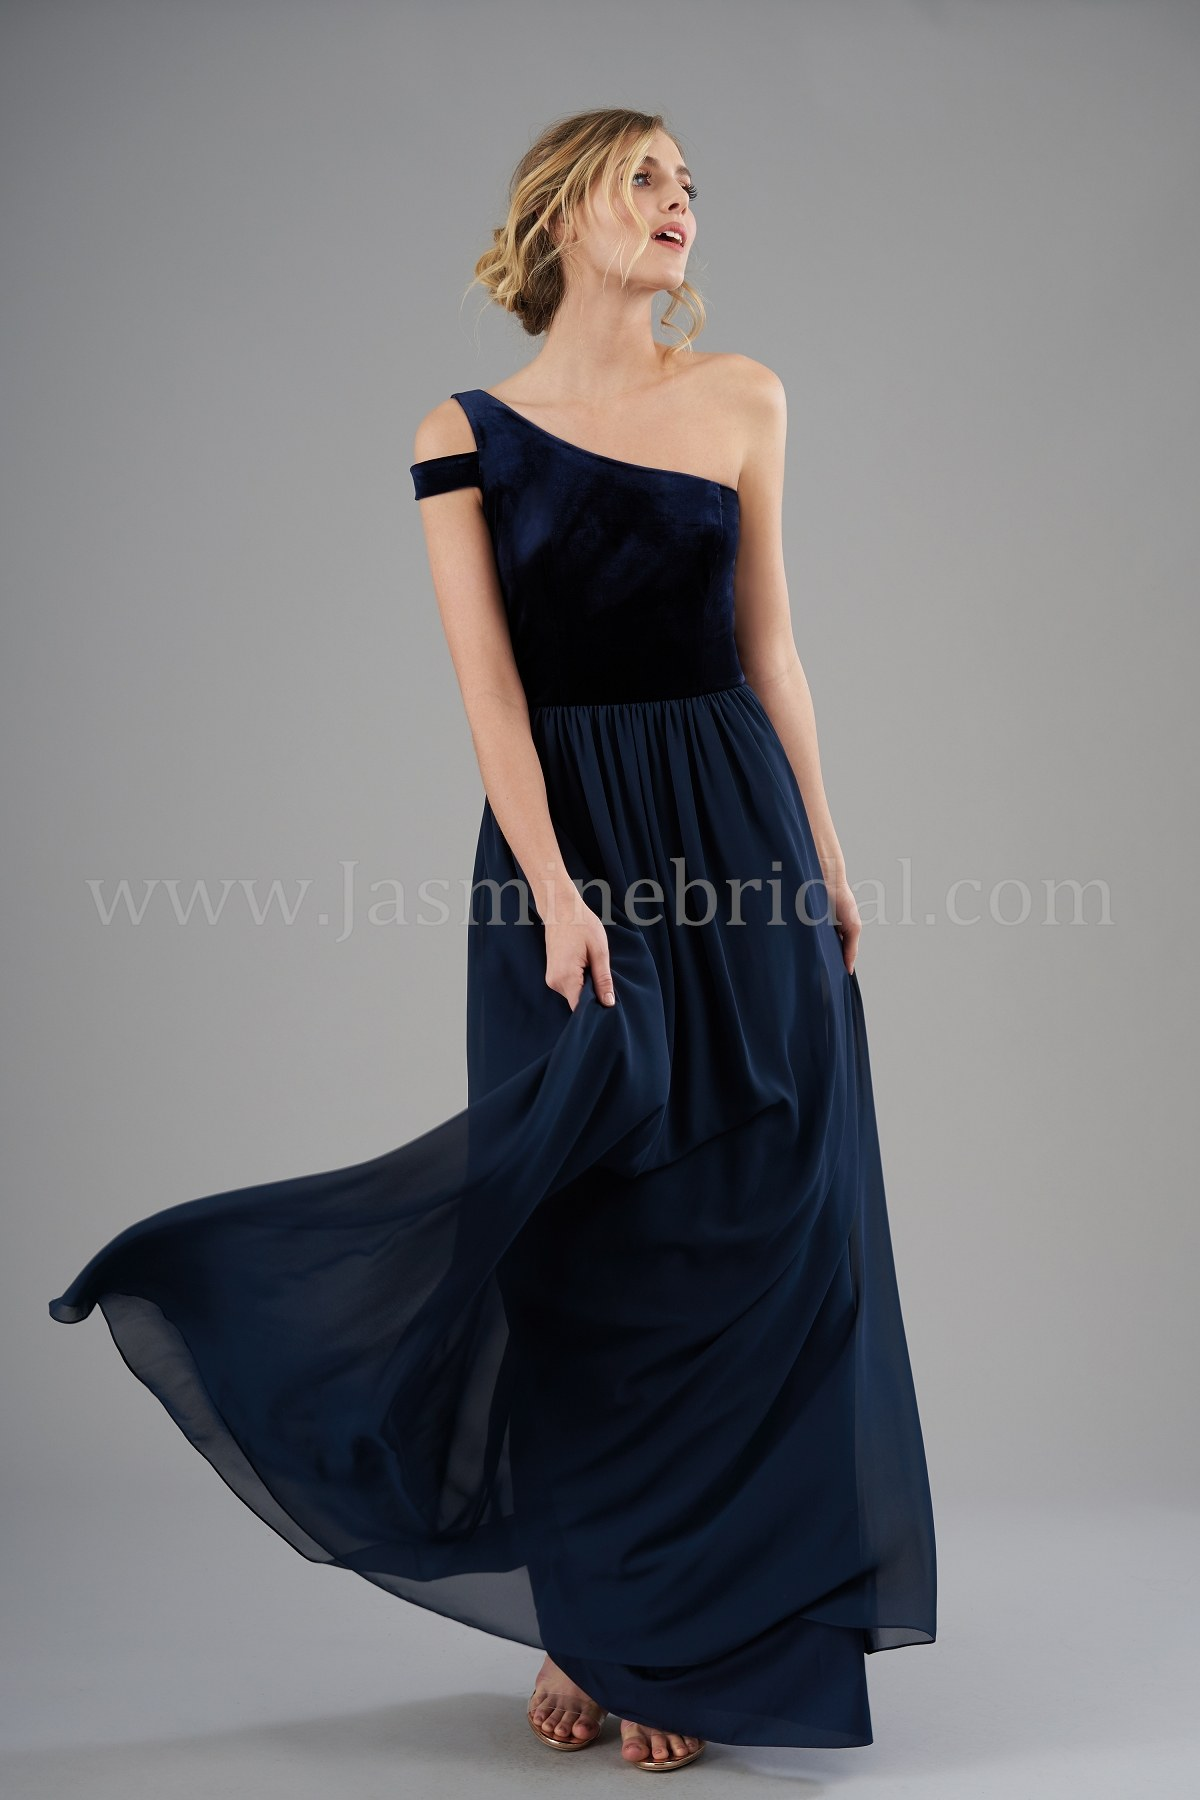 bridesmaid-dresses-B203066-F